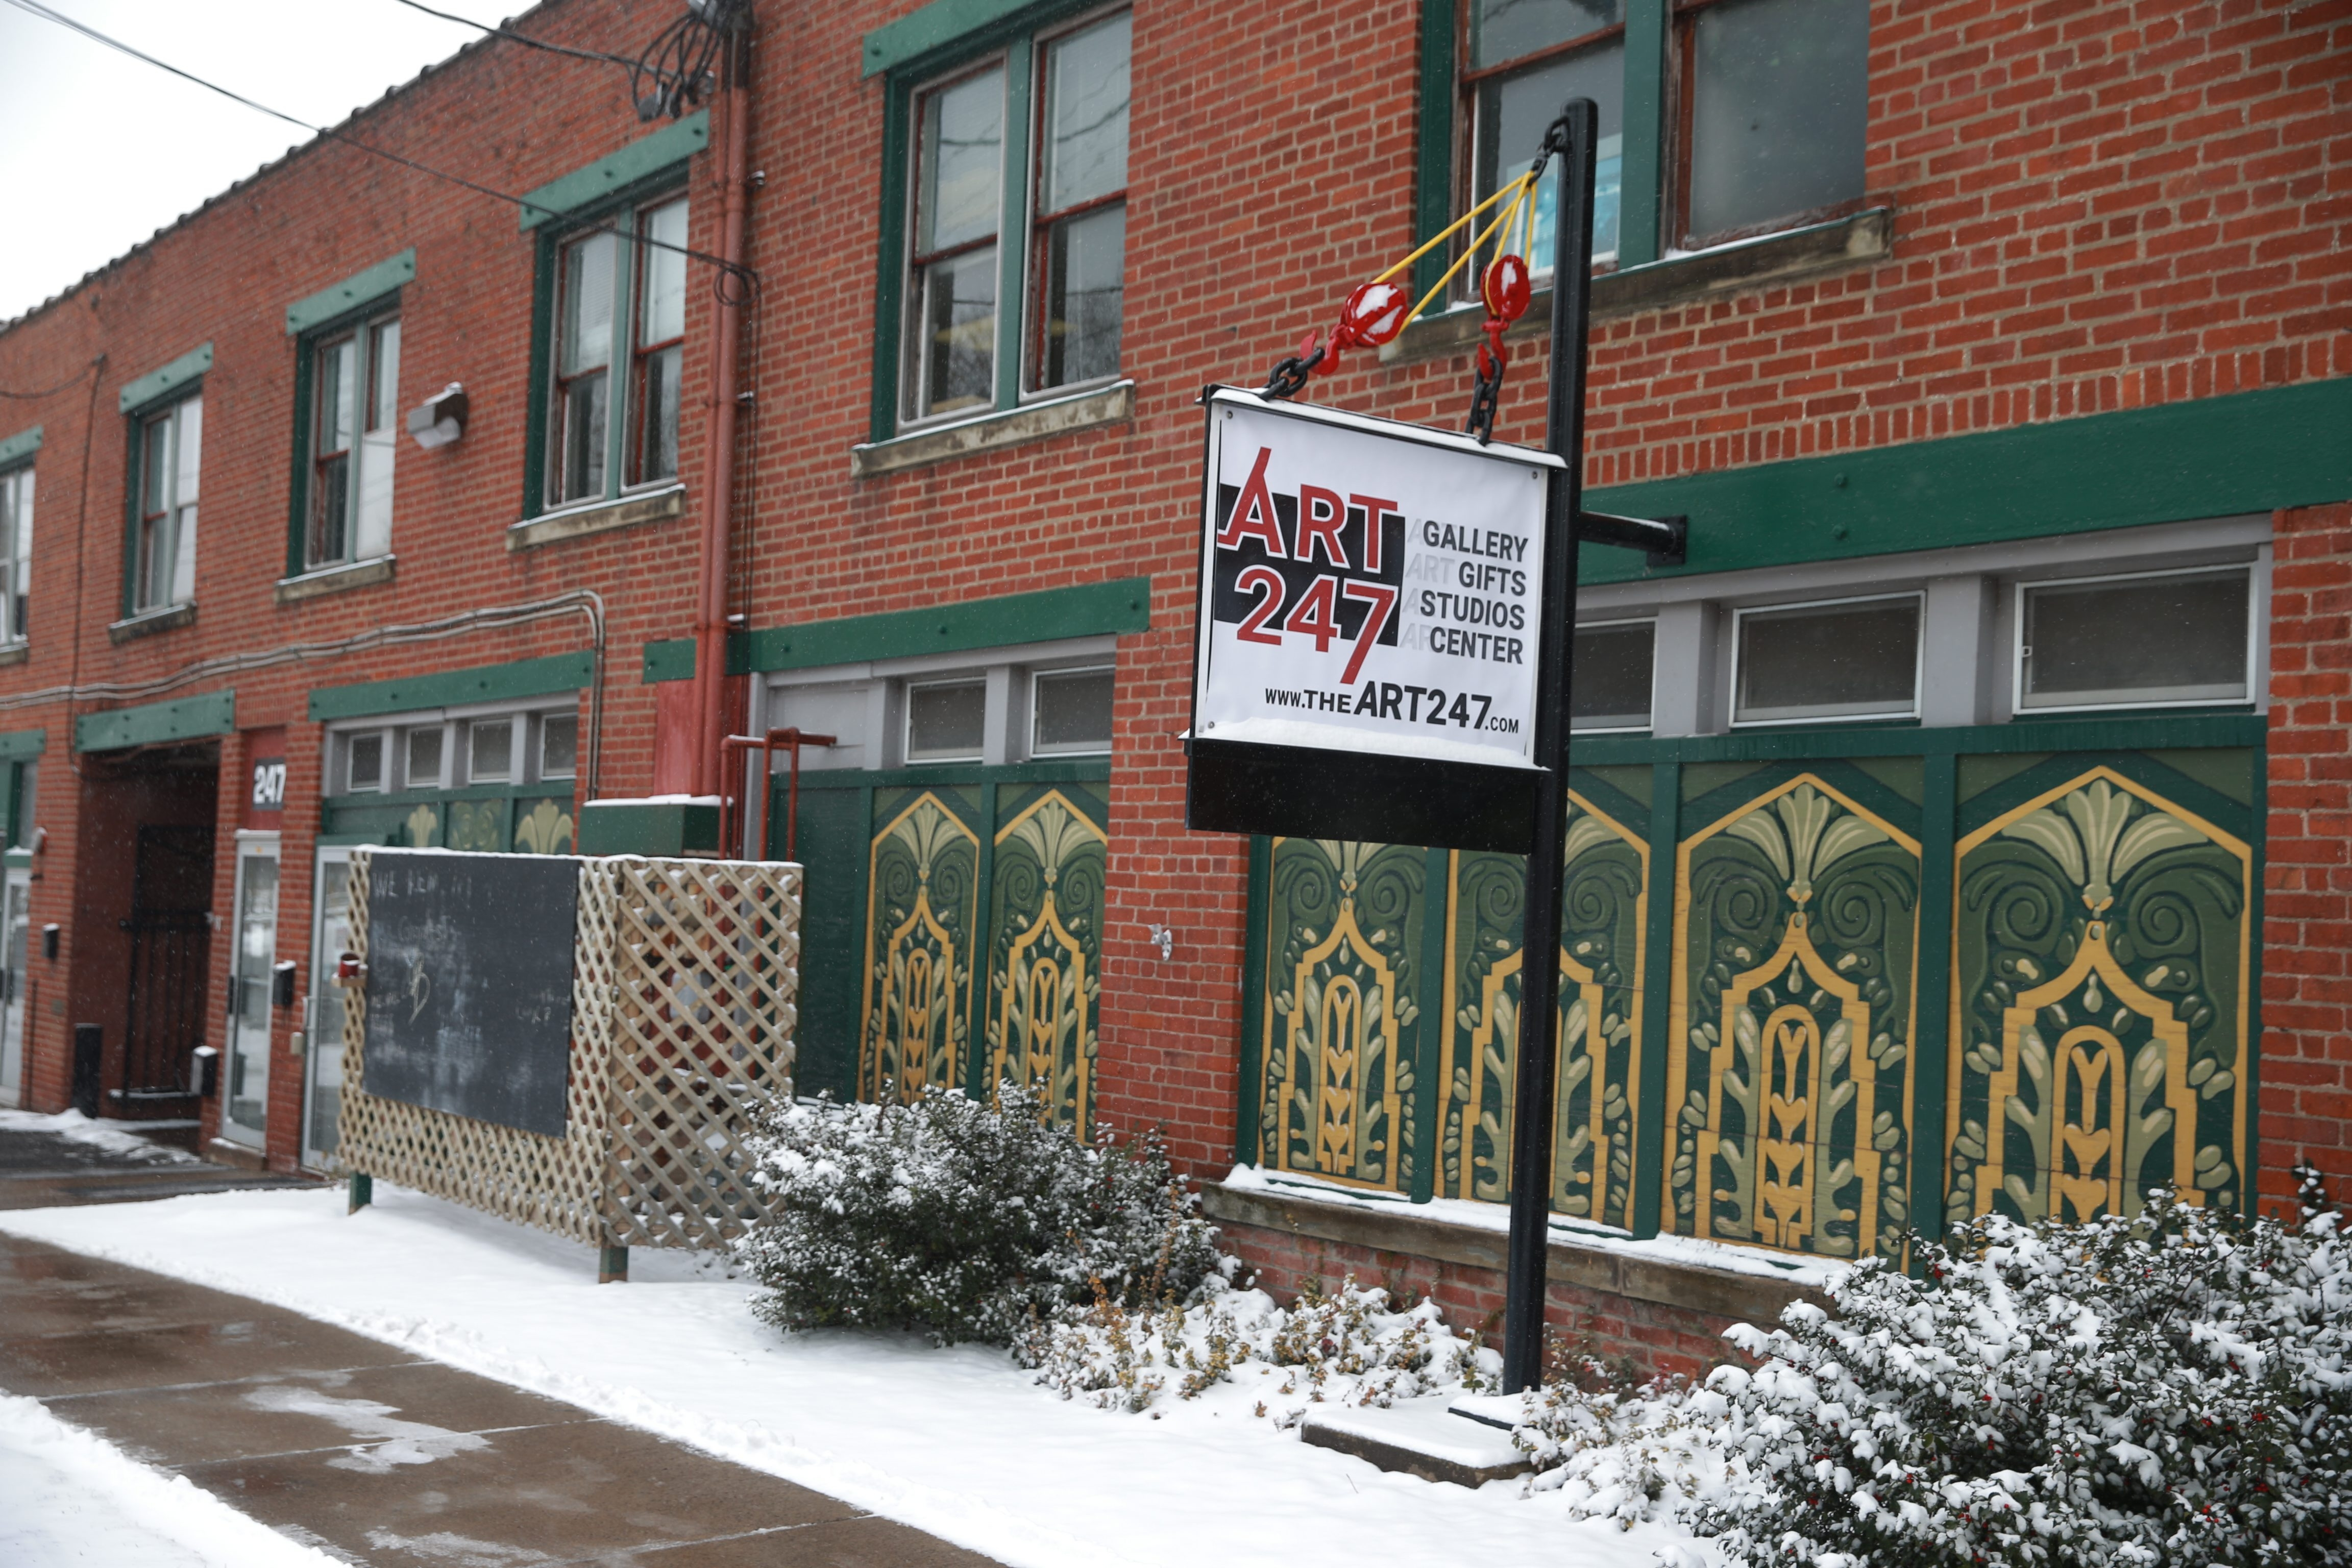 Lockport's Market Street Art Center is now called Art 247. New owner Heather Grimmer envisions the space housing a community events center as well as studio space.